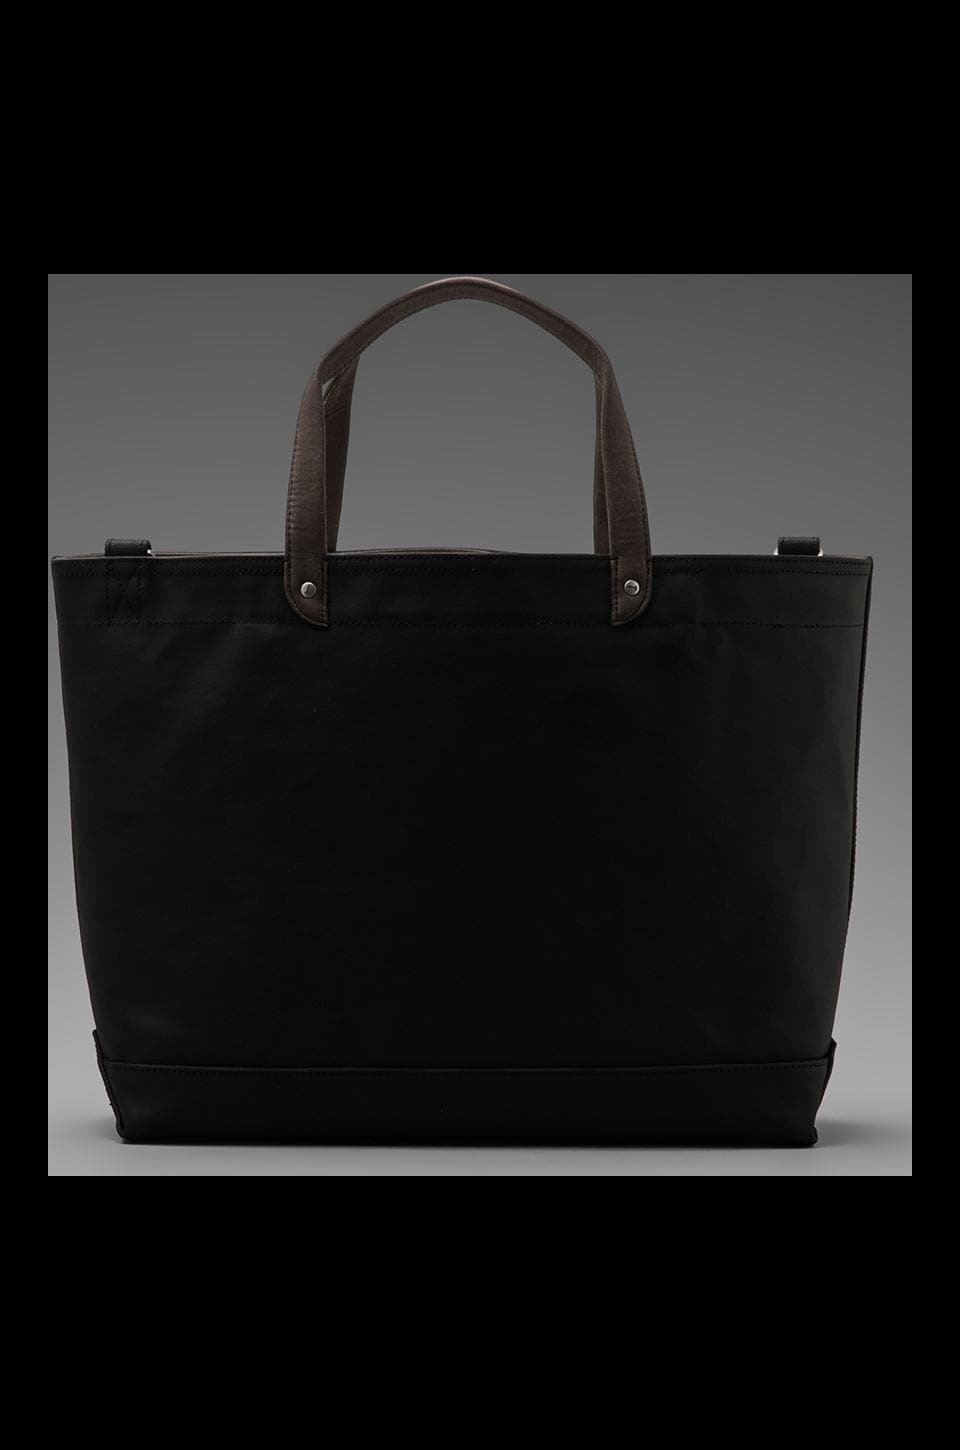 Jack Spade Blackboard Canvas Coal Bag in Charcoal